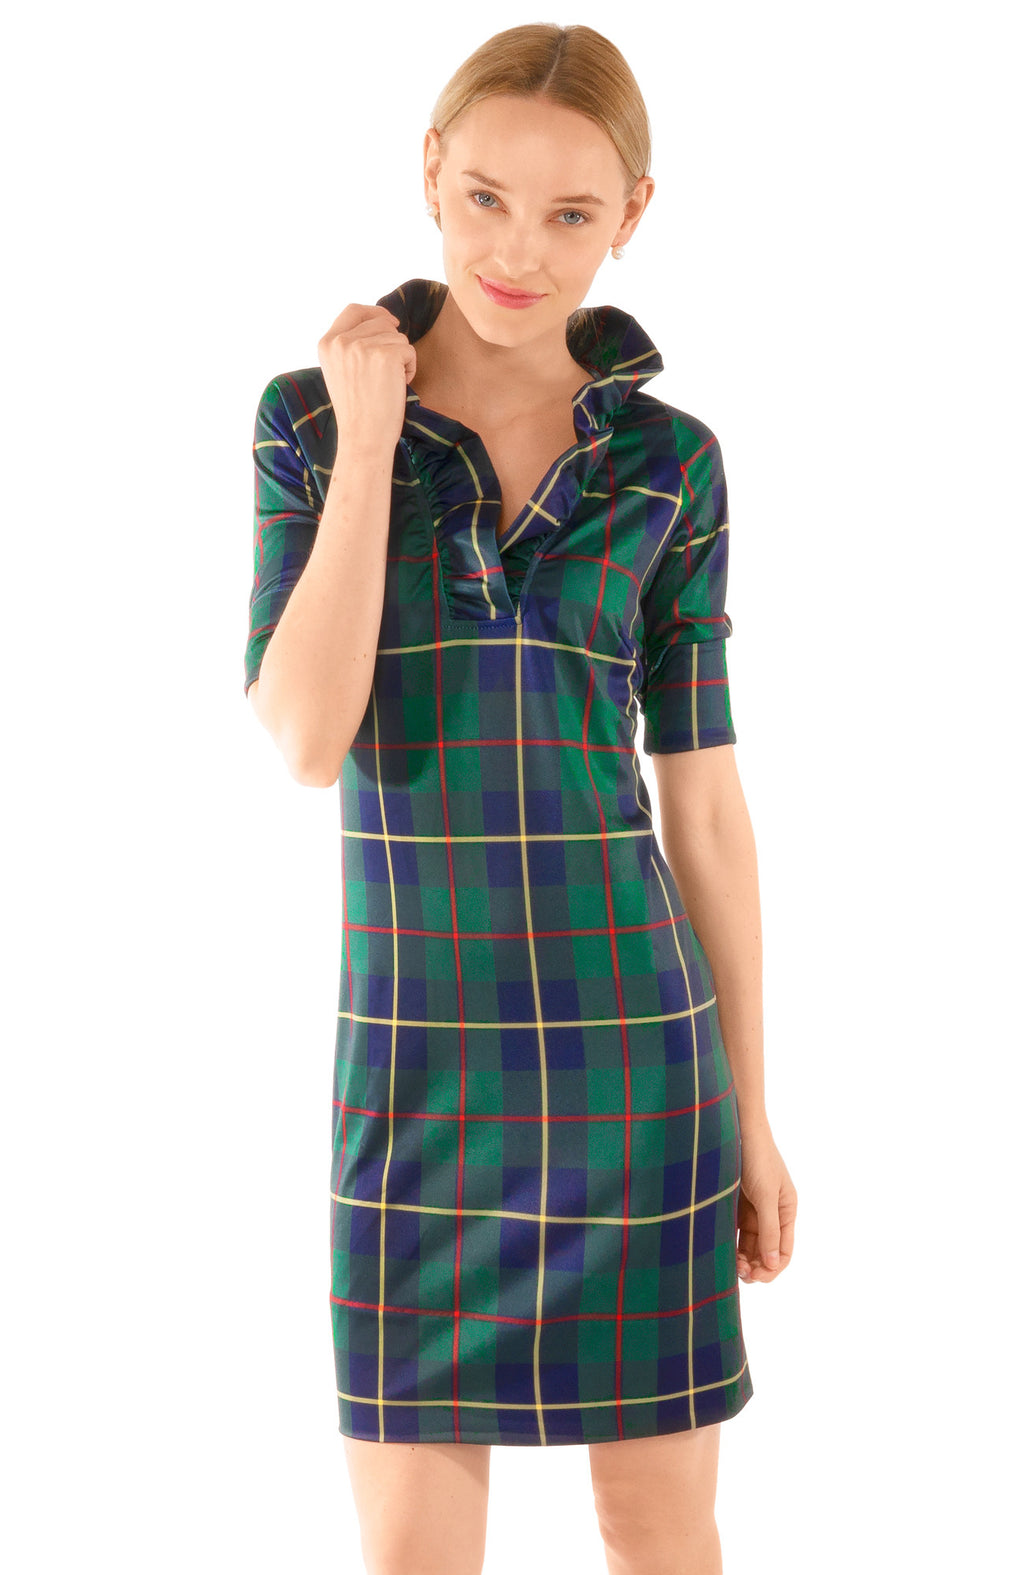 GRETCHEN SCOTT PLAIDLY COOPER DRESS